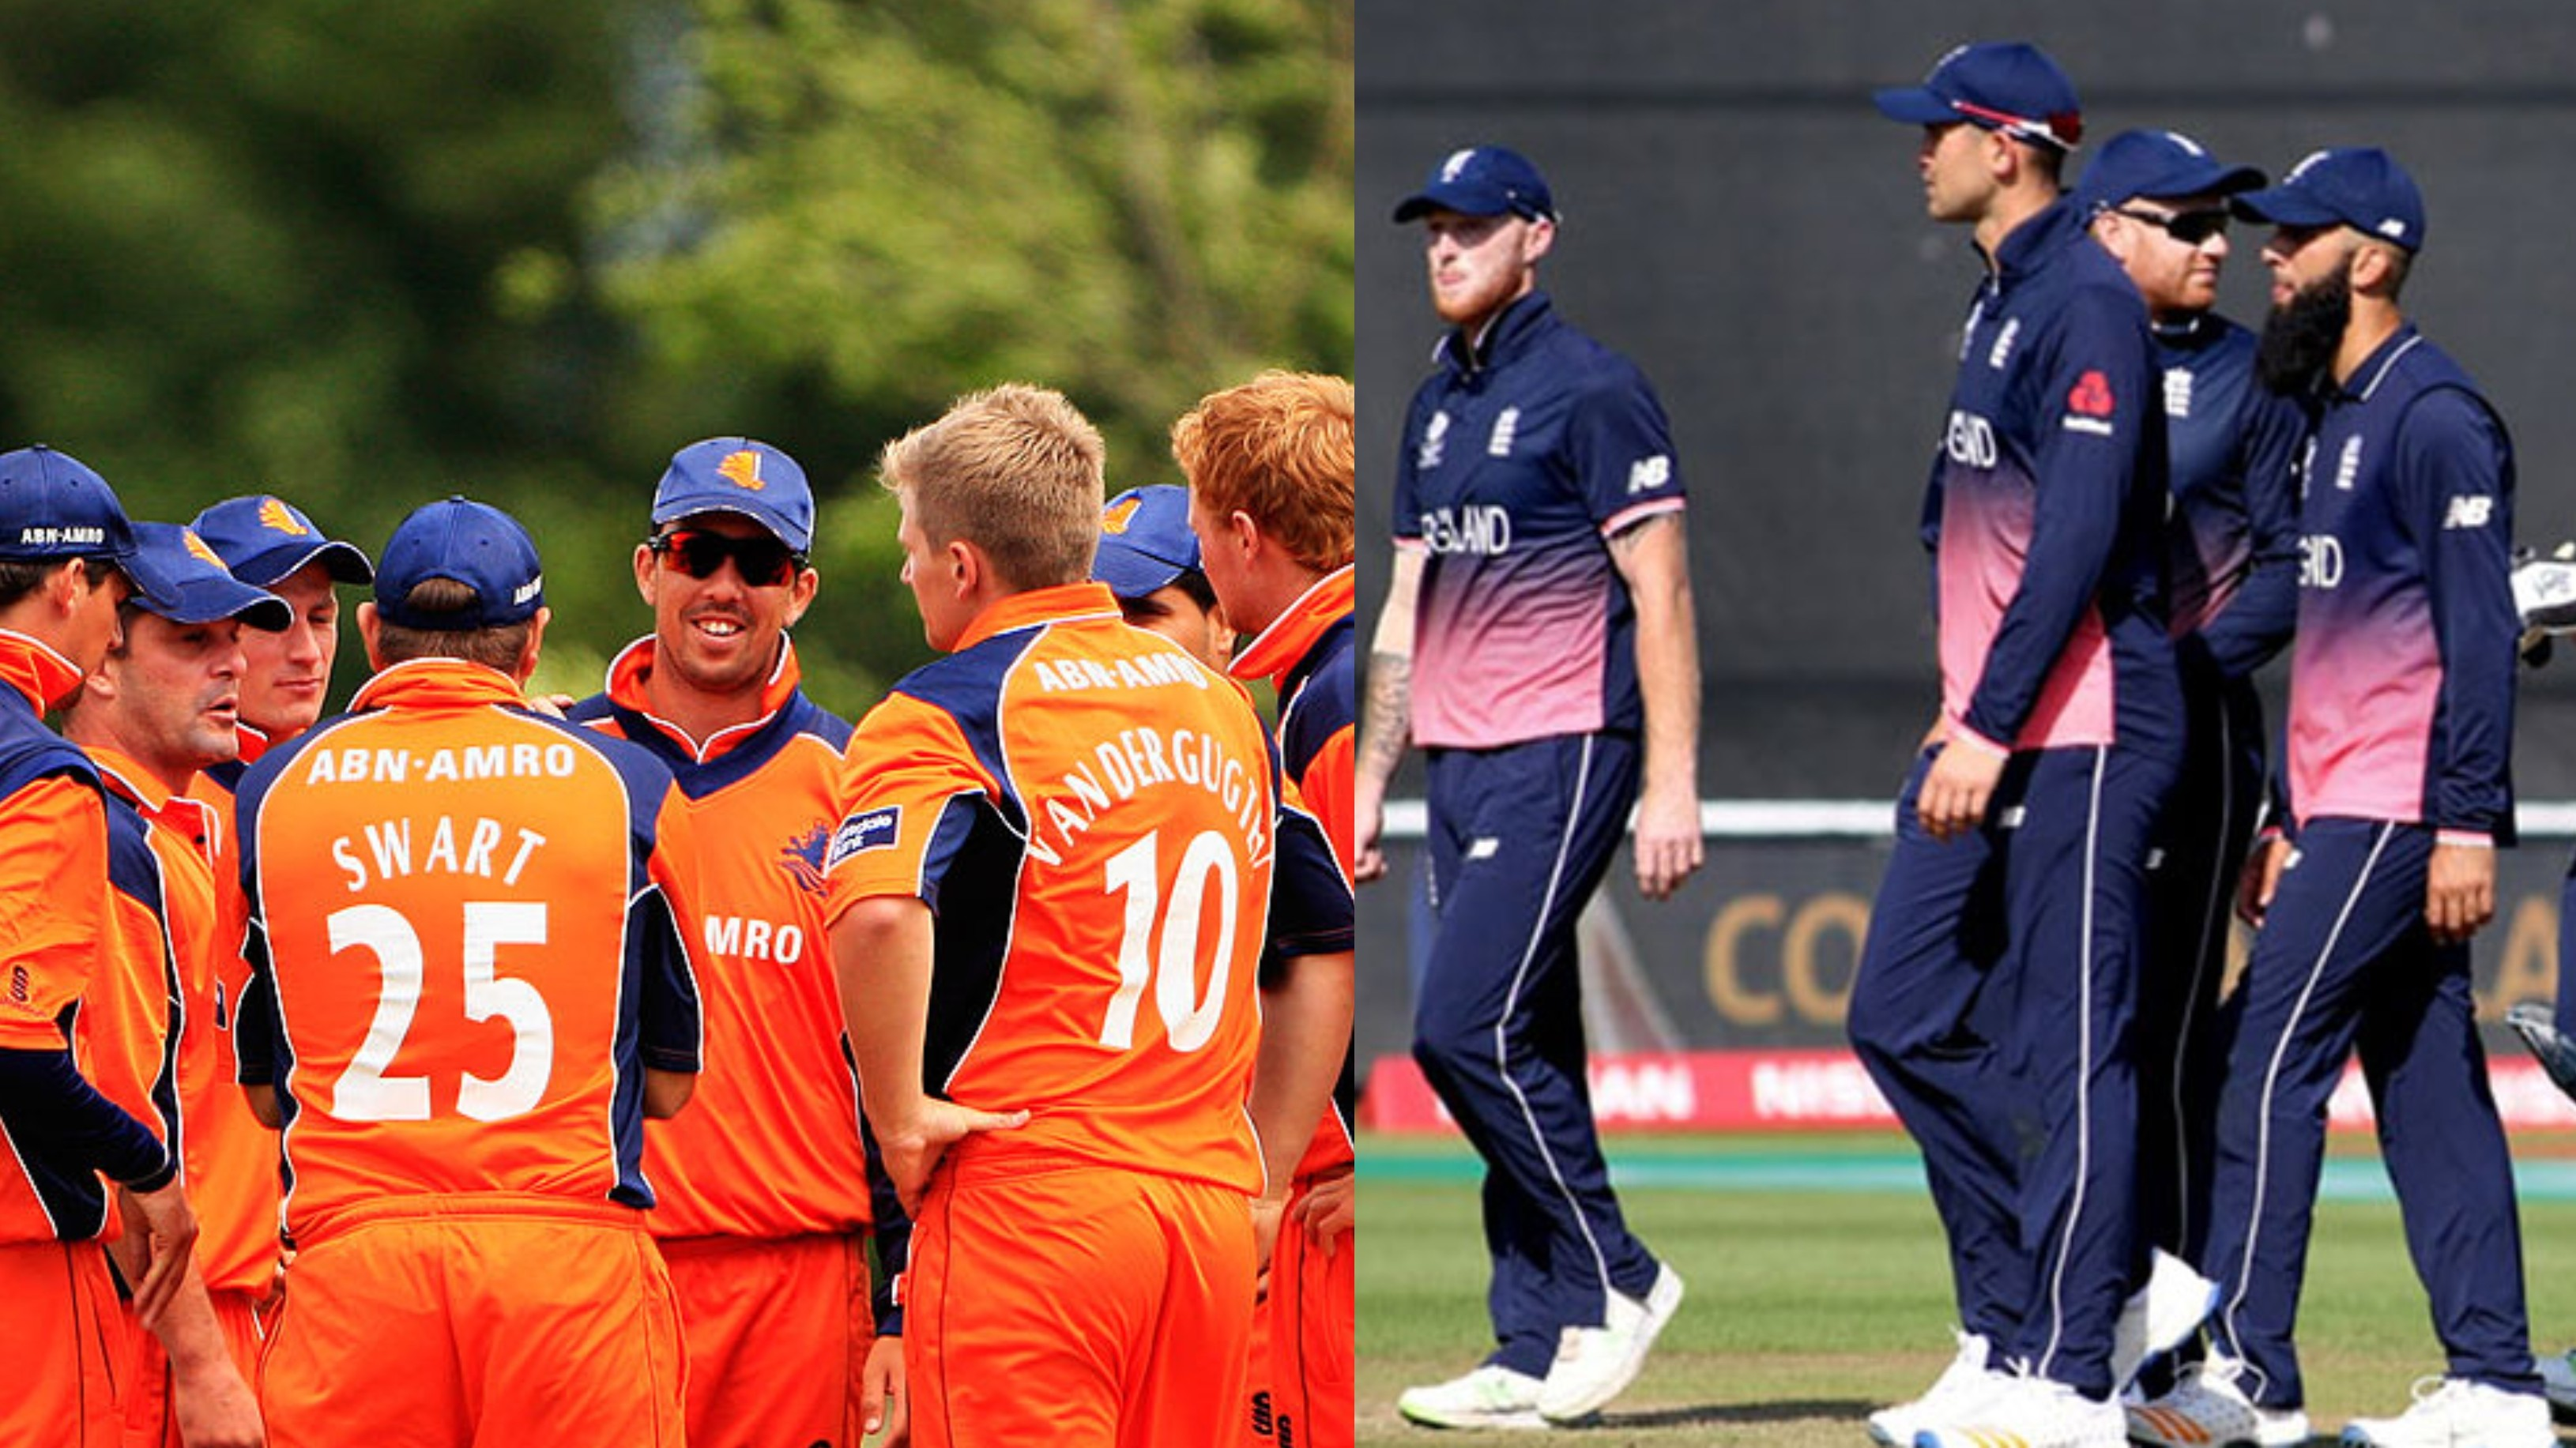 England's ODI tour of the Netherlands postponed to 2022 due to COVID-19 pandemic